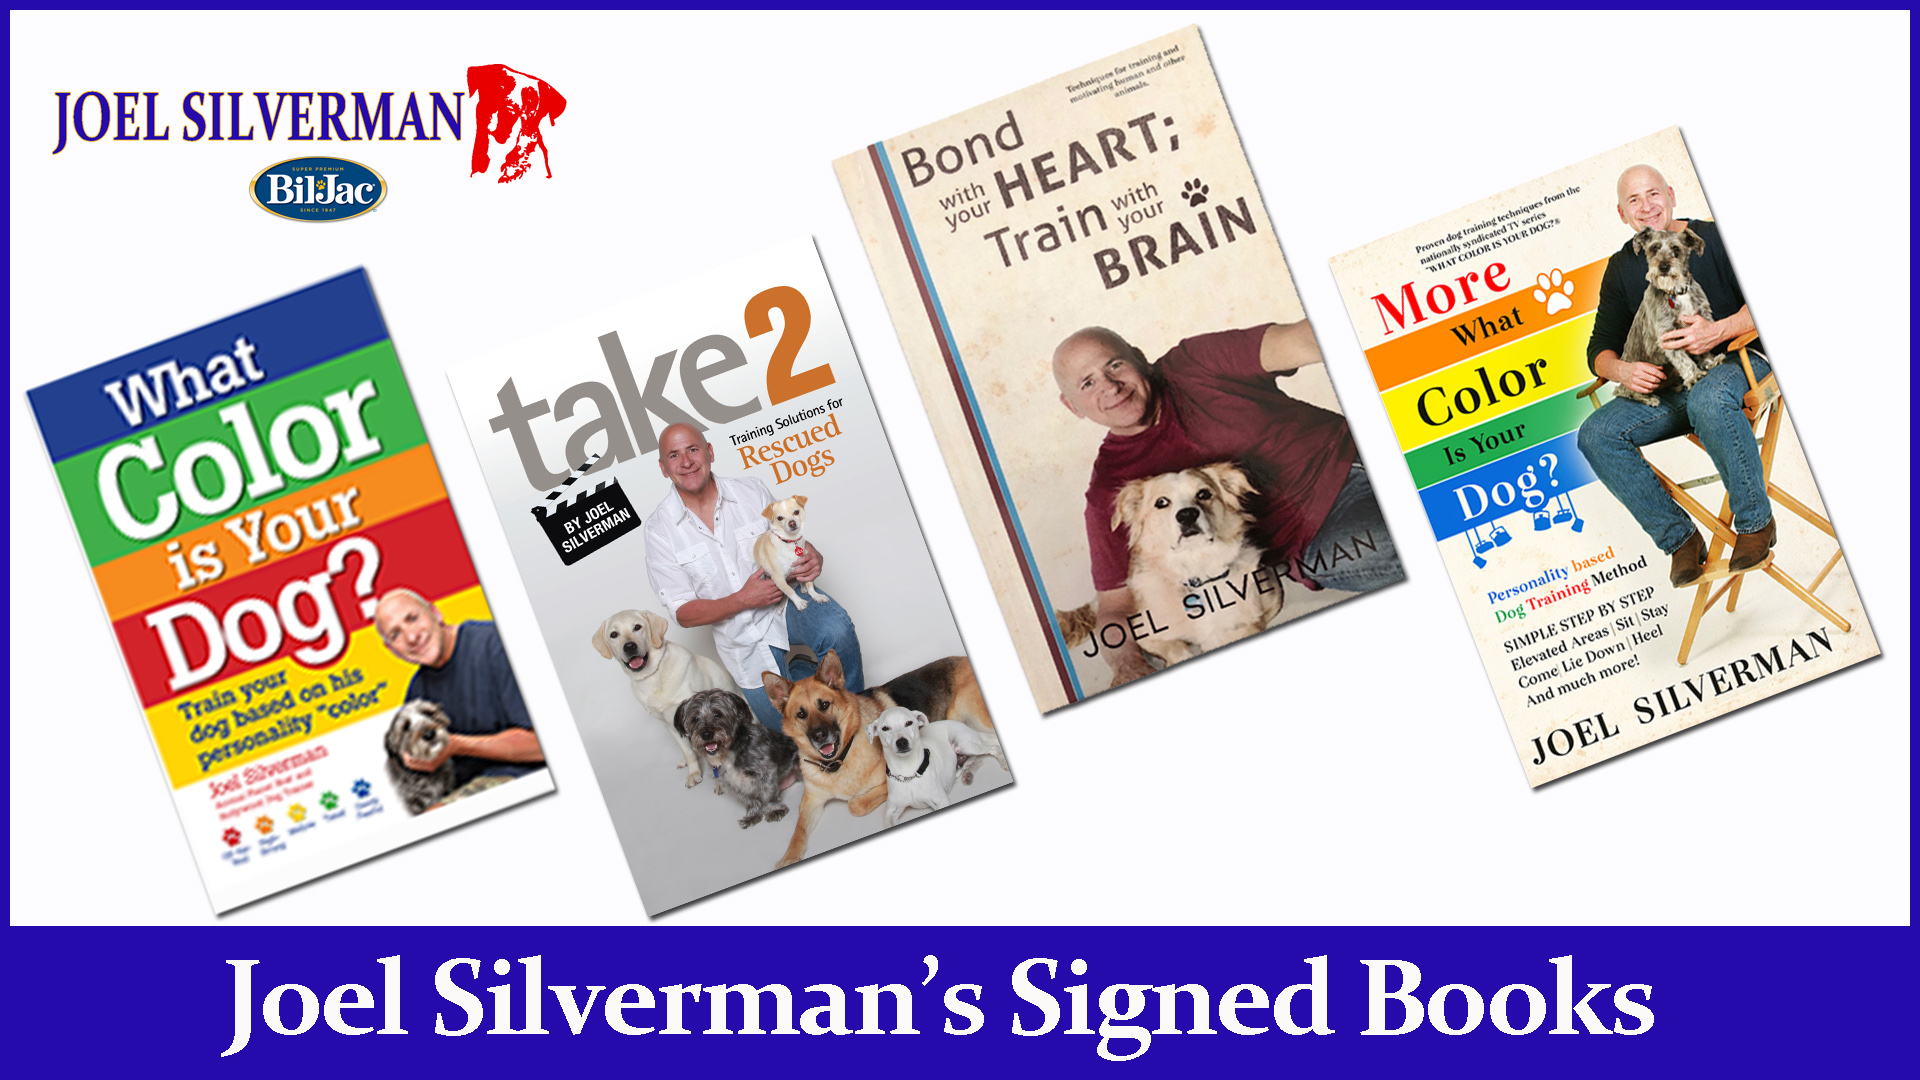 Joel Silverman's Signed Books